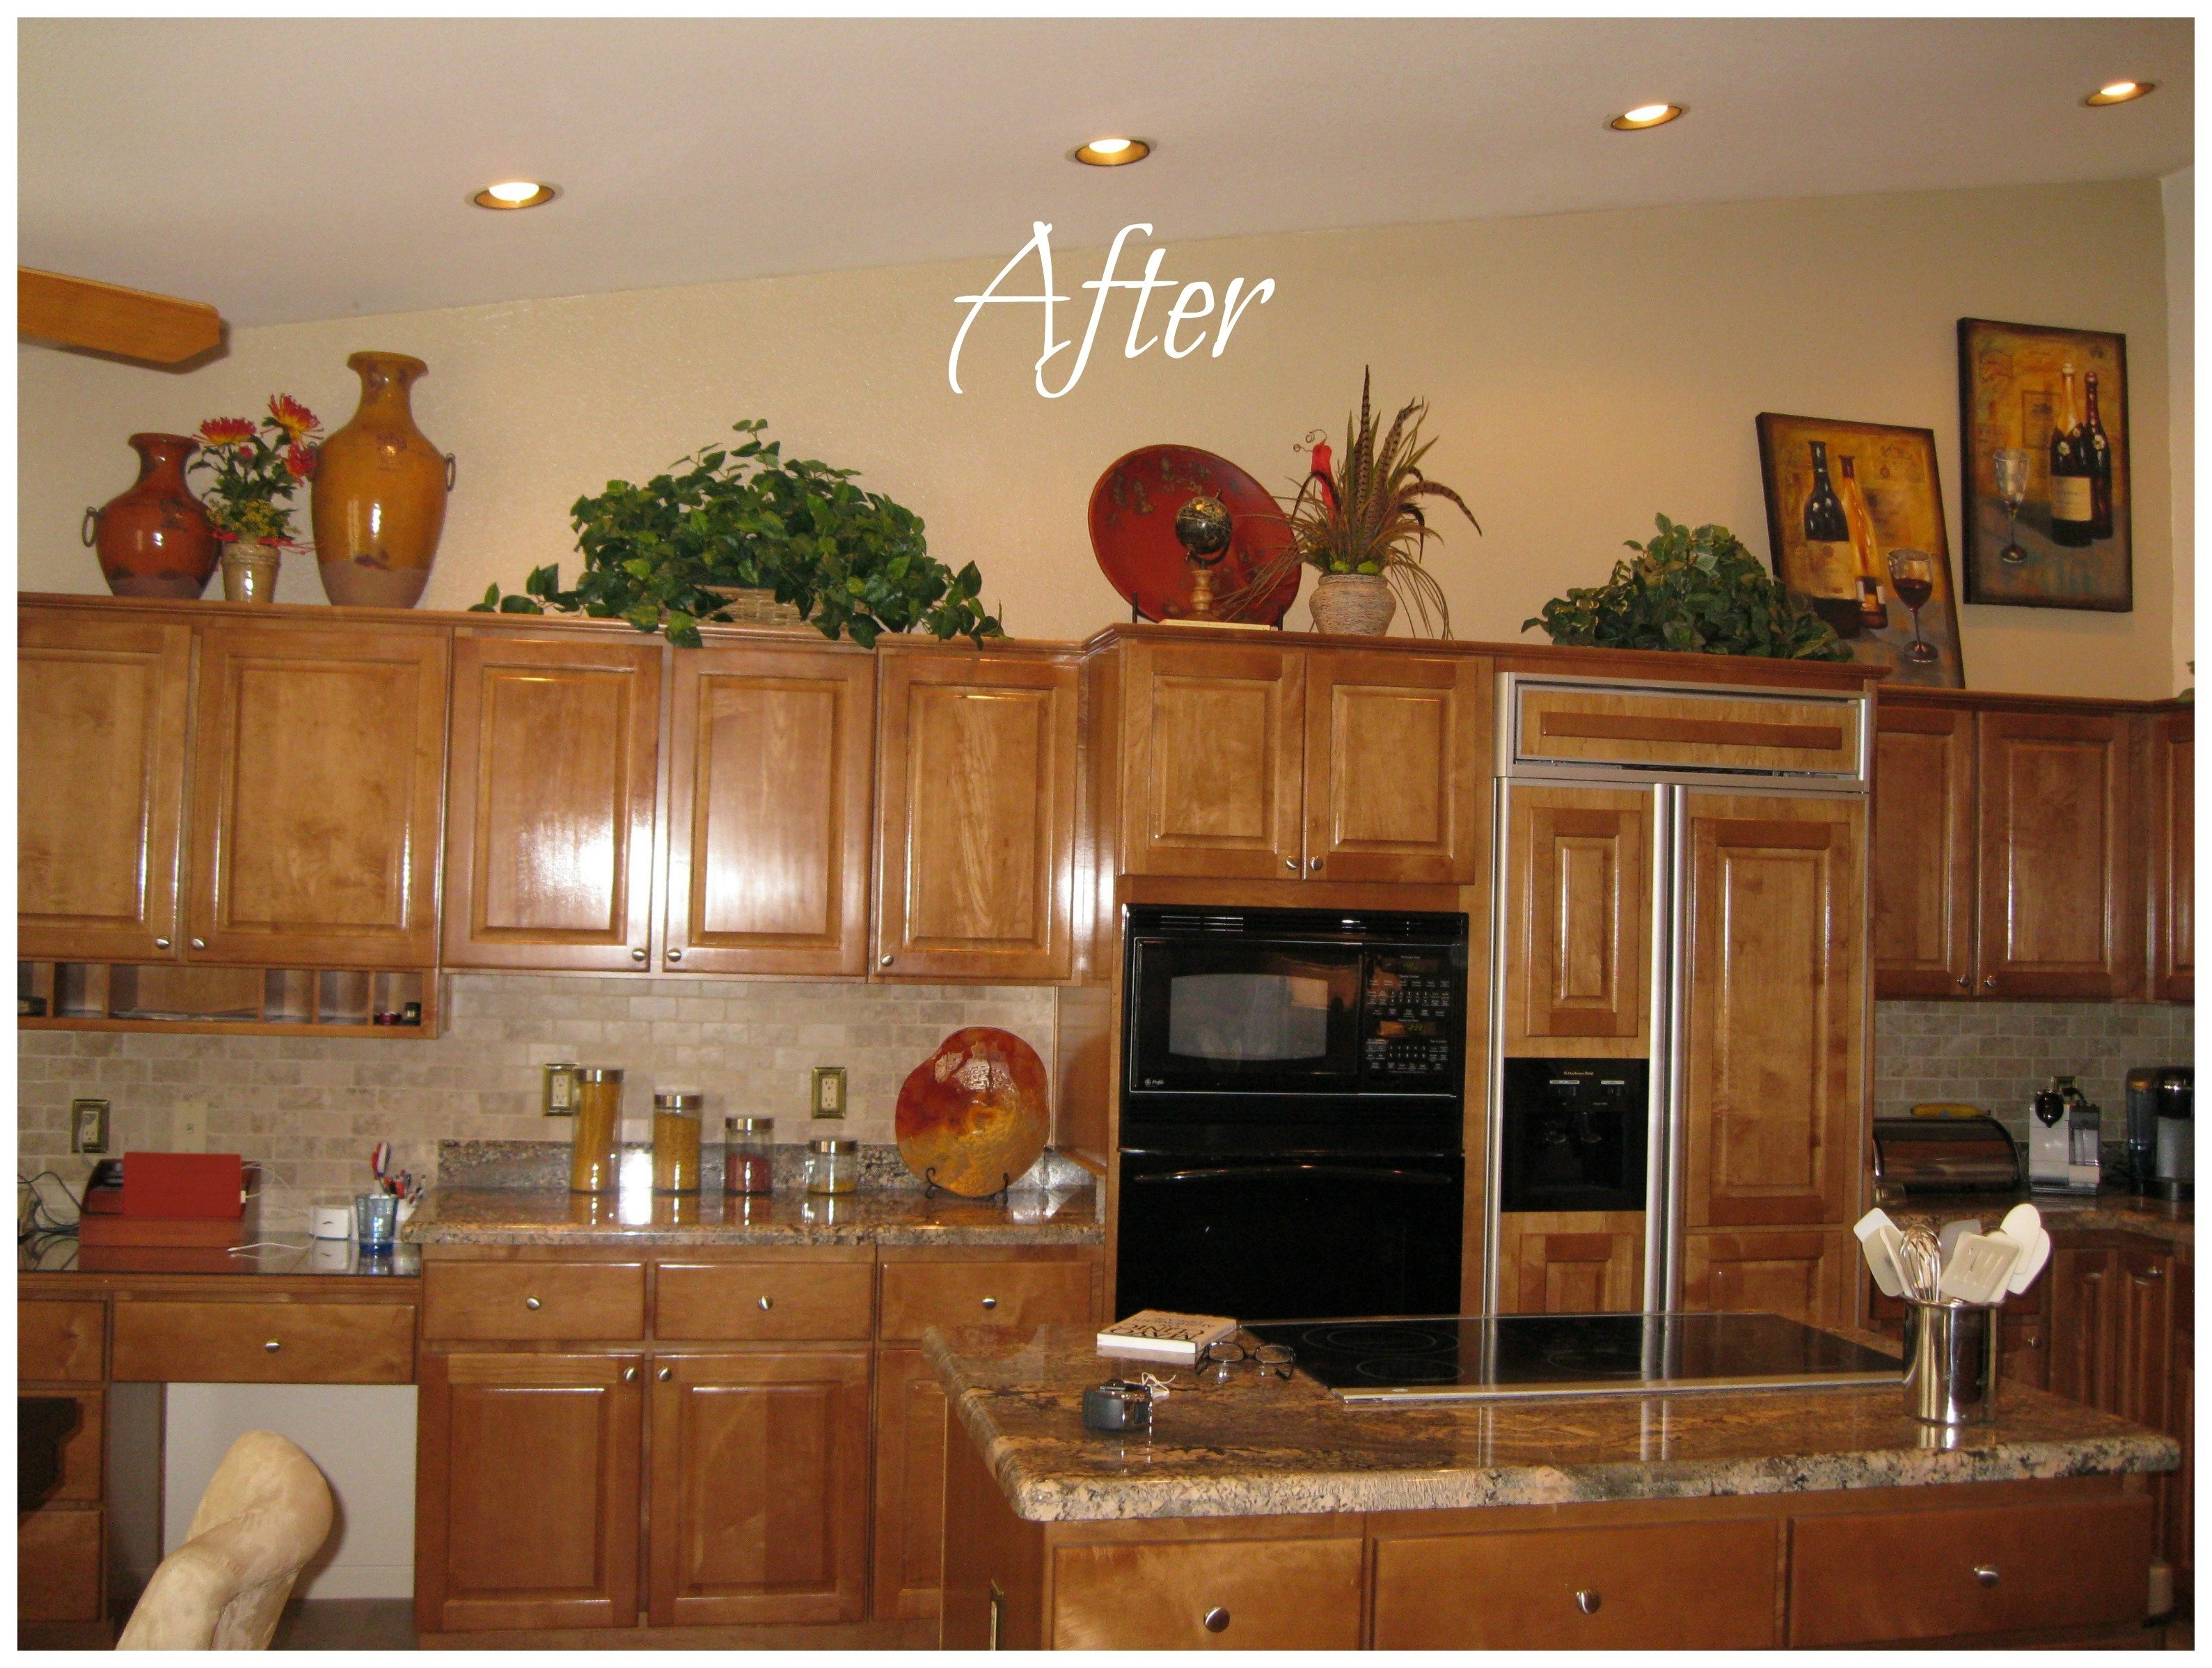 ideas for decorating above kitchen cabinets home design, designs for